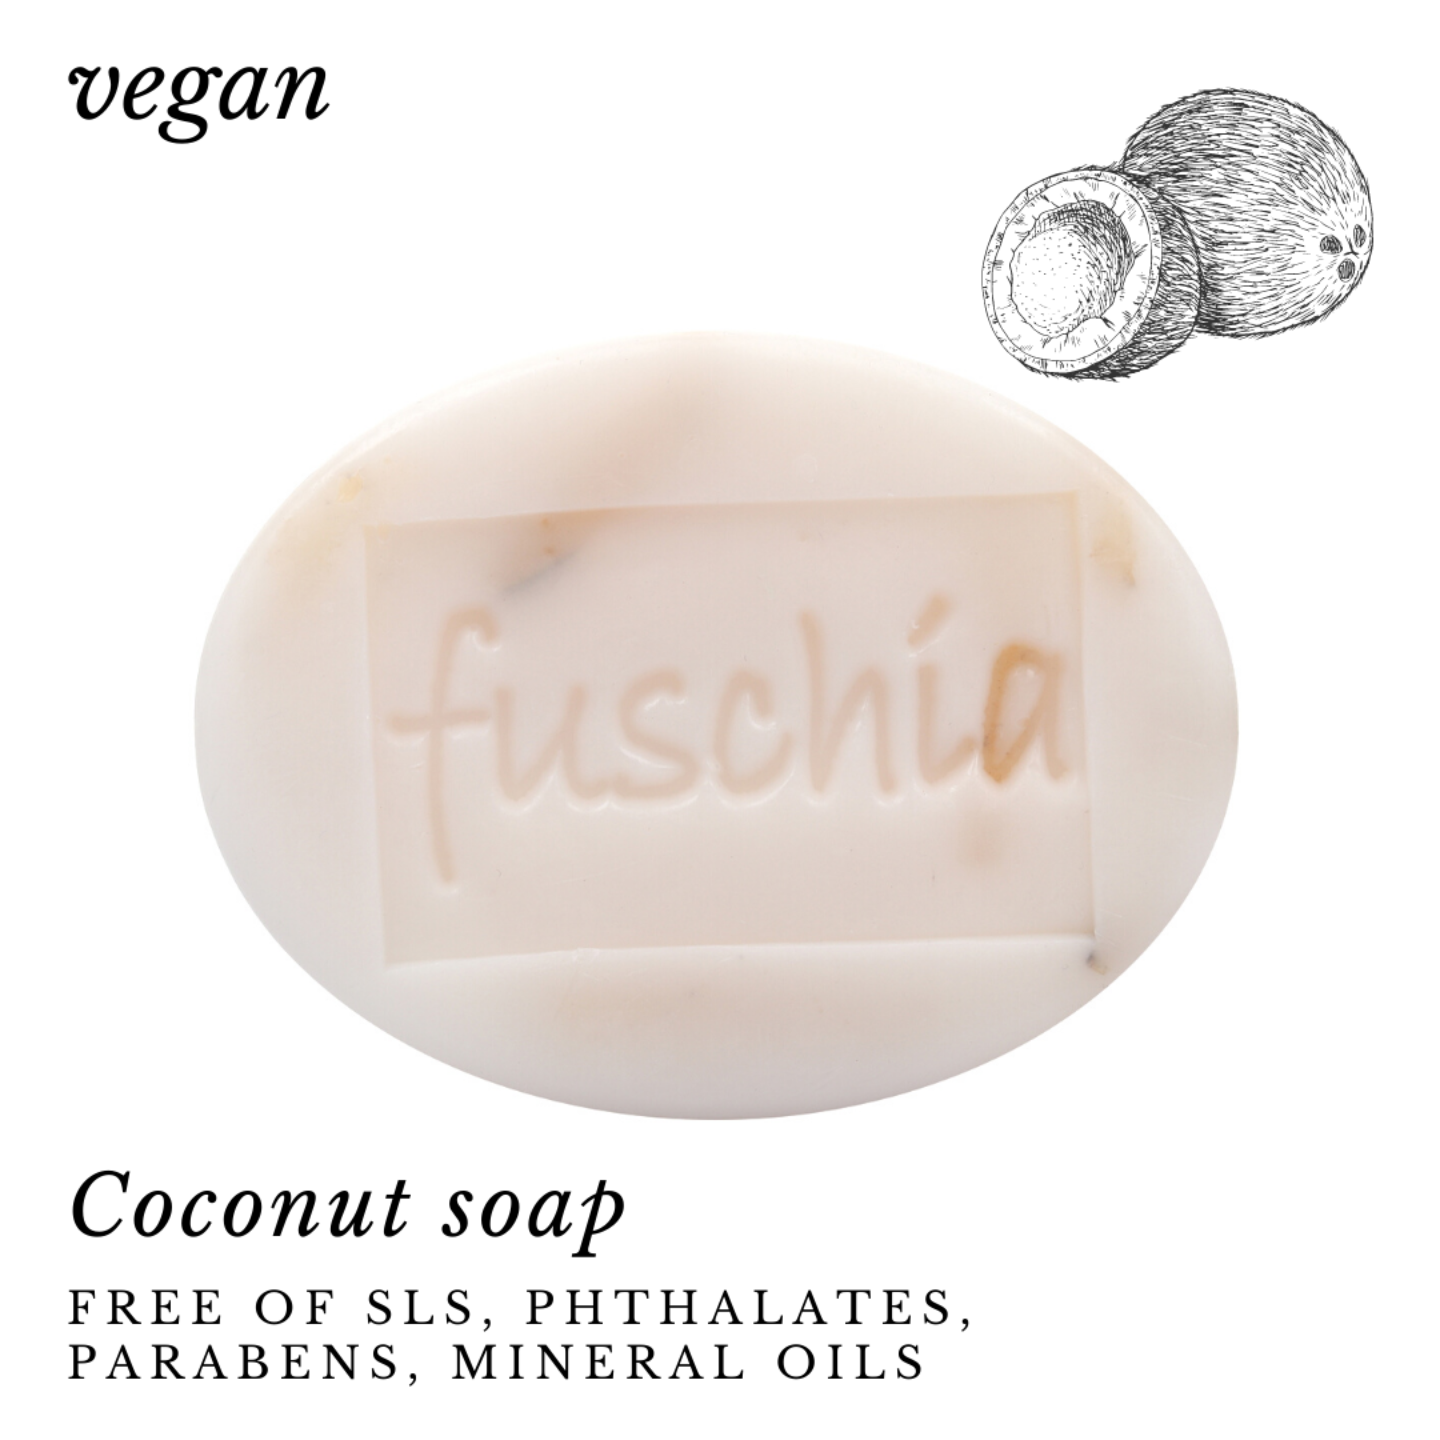 Fuschia - Coconut Natural Handmade Herbal Soap